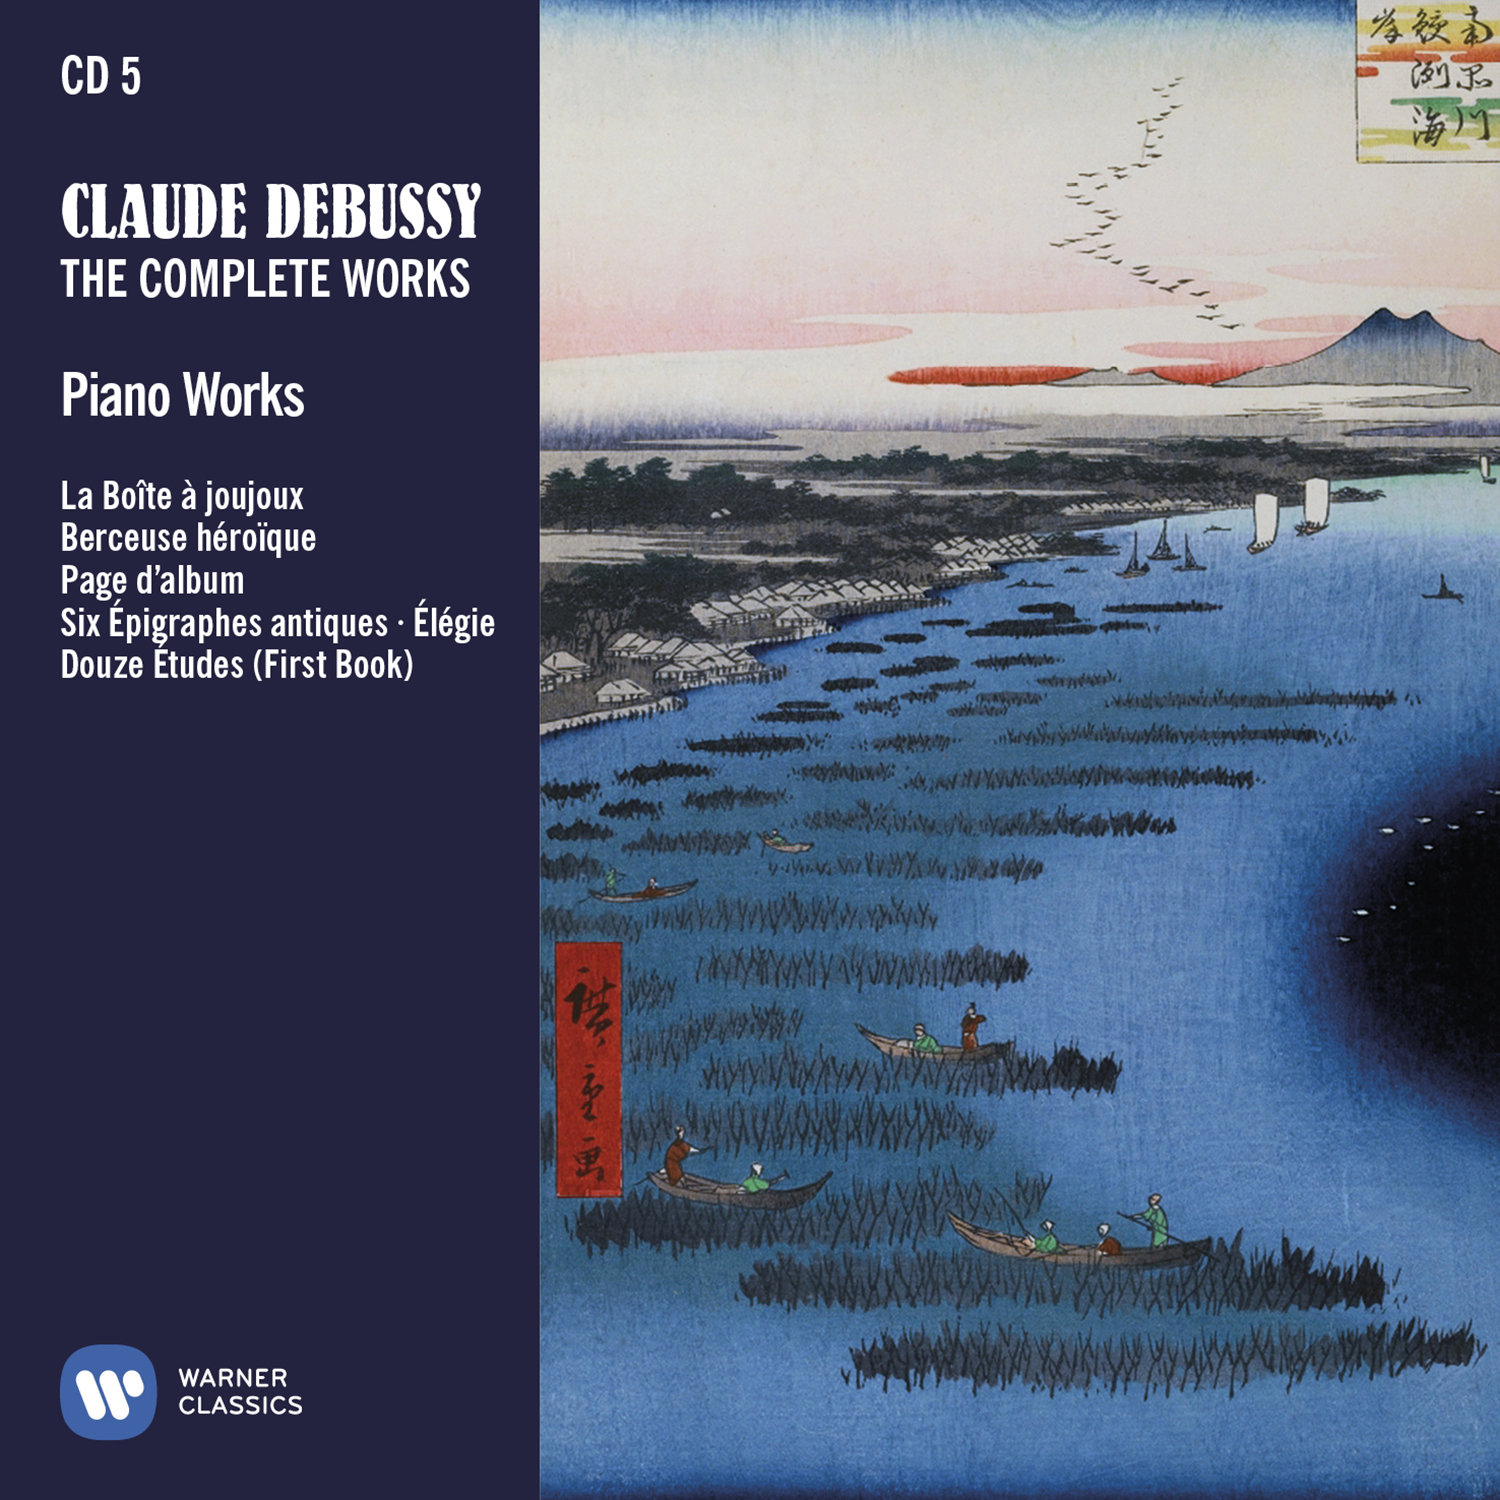 Debussy The complete works - Cover wallet CD5.jpg